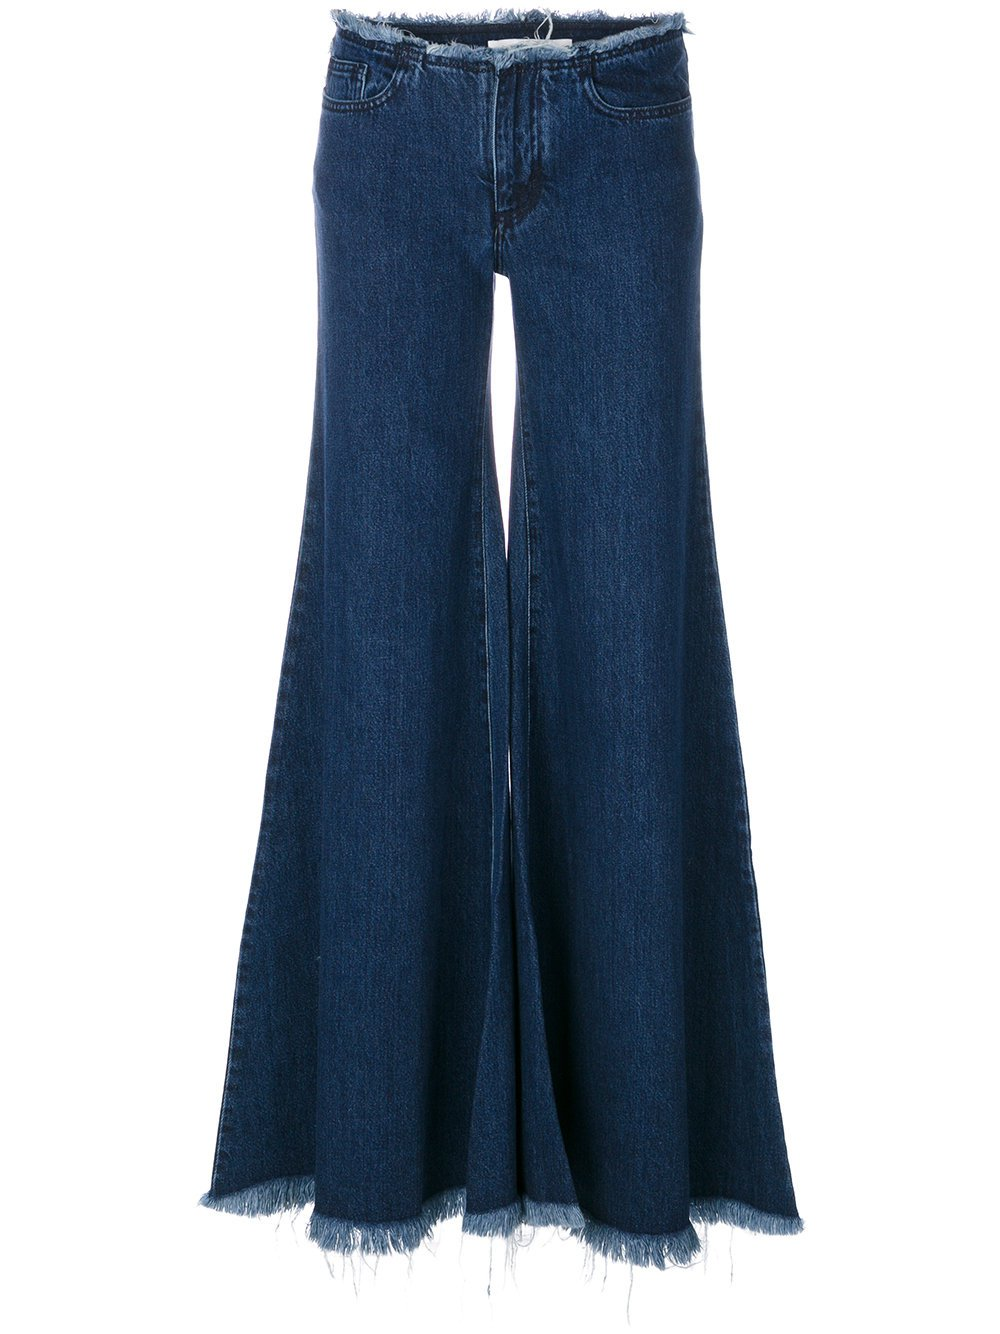 MARQUES'ALMEIDA flared wide-leg jeans | Farfetch